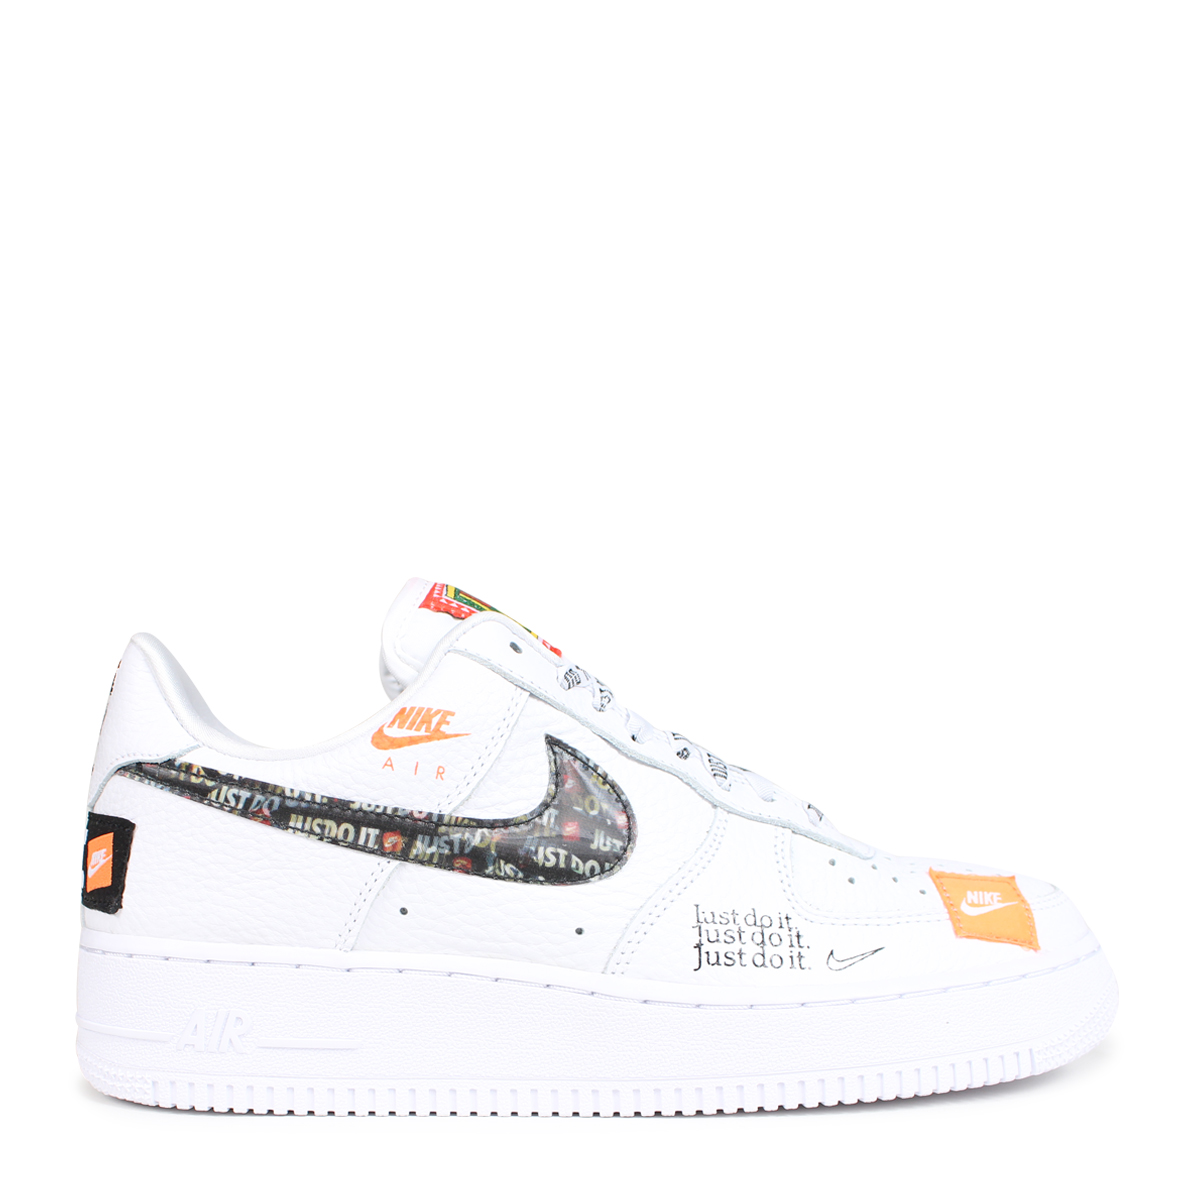 df0eae809d99 NIKE AIR FORCE 1 07 PREMIUM JUST DO IT Nike air force 1 sneakers men AR7719-100  white  load planned Shinnyu load in reservation product 7 27 containing  ...